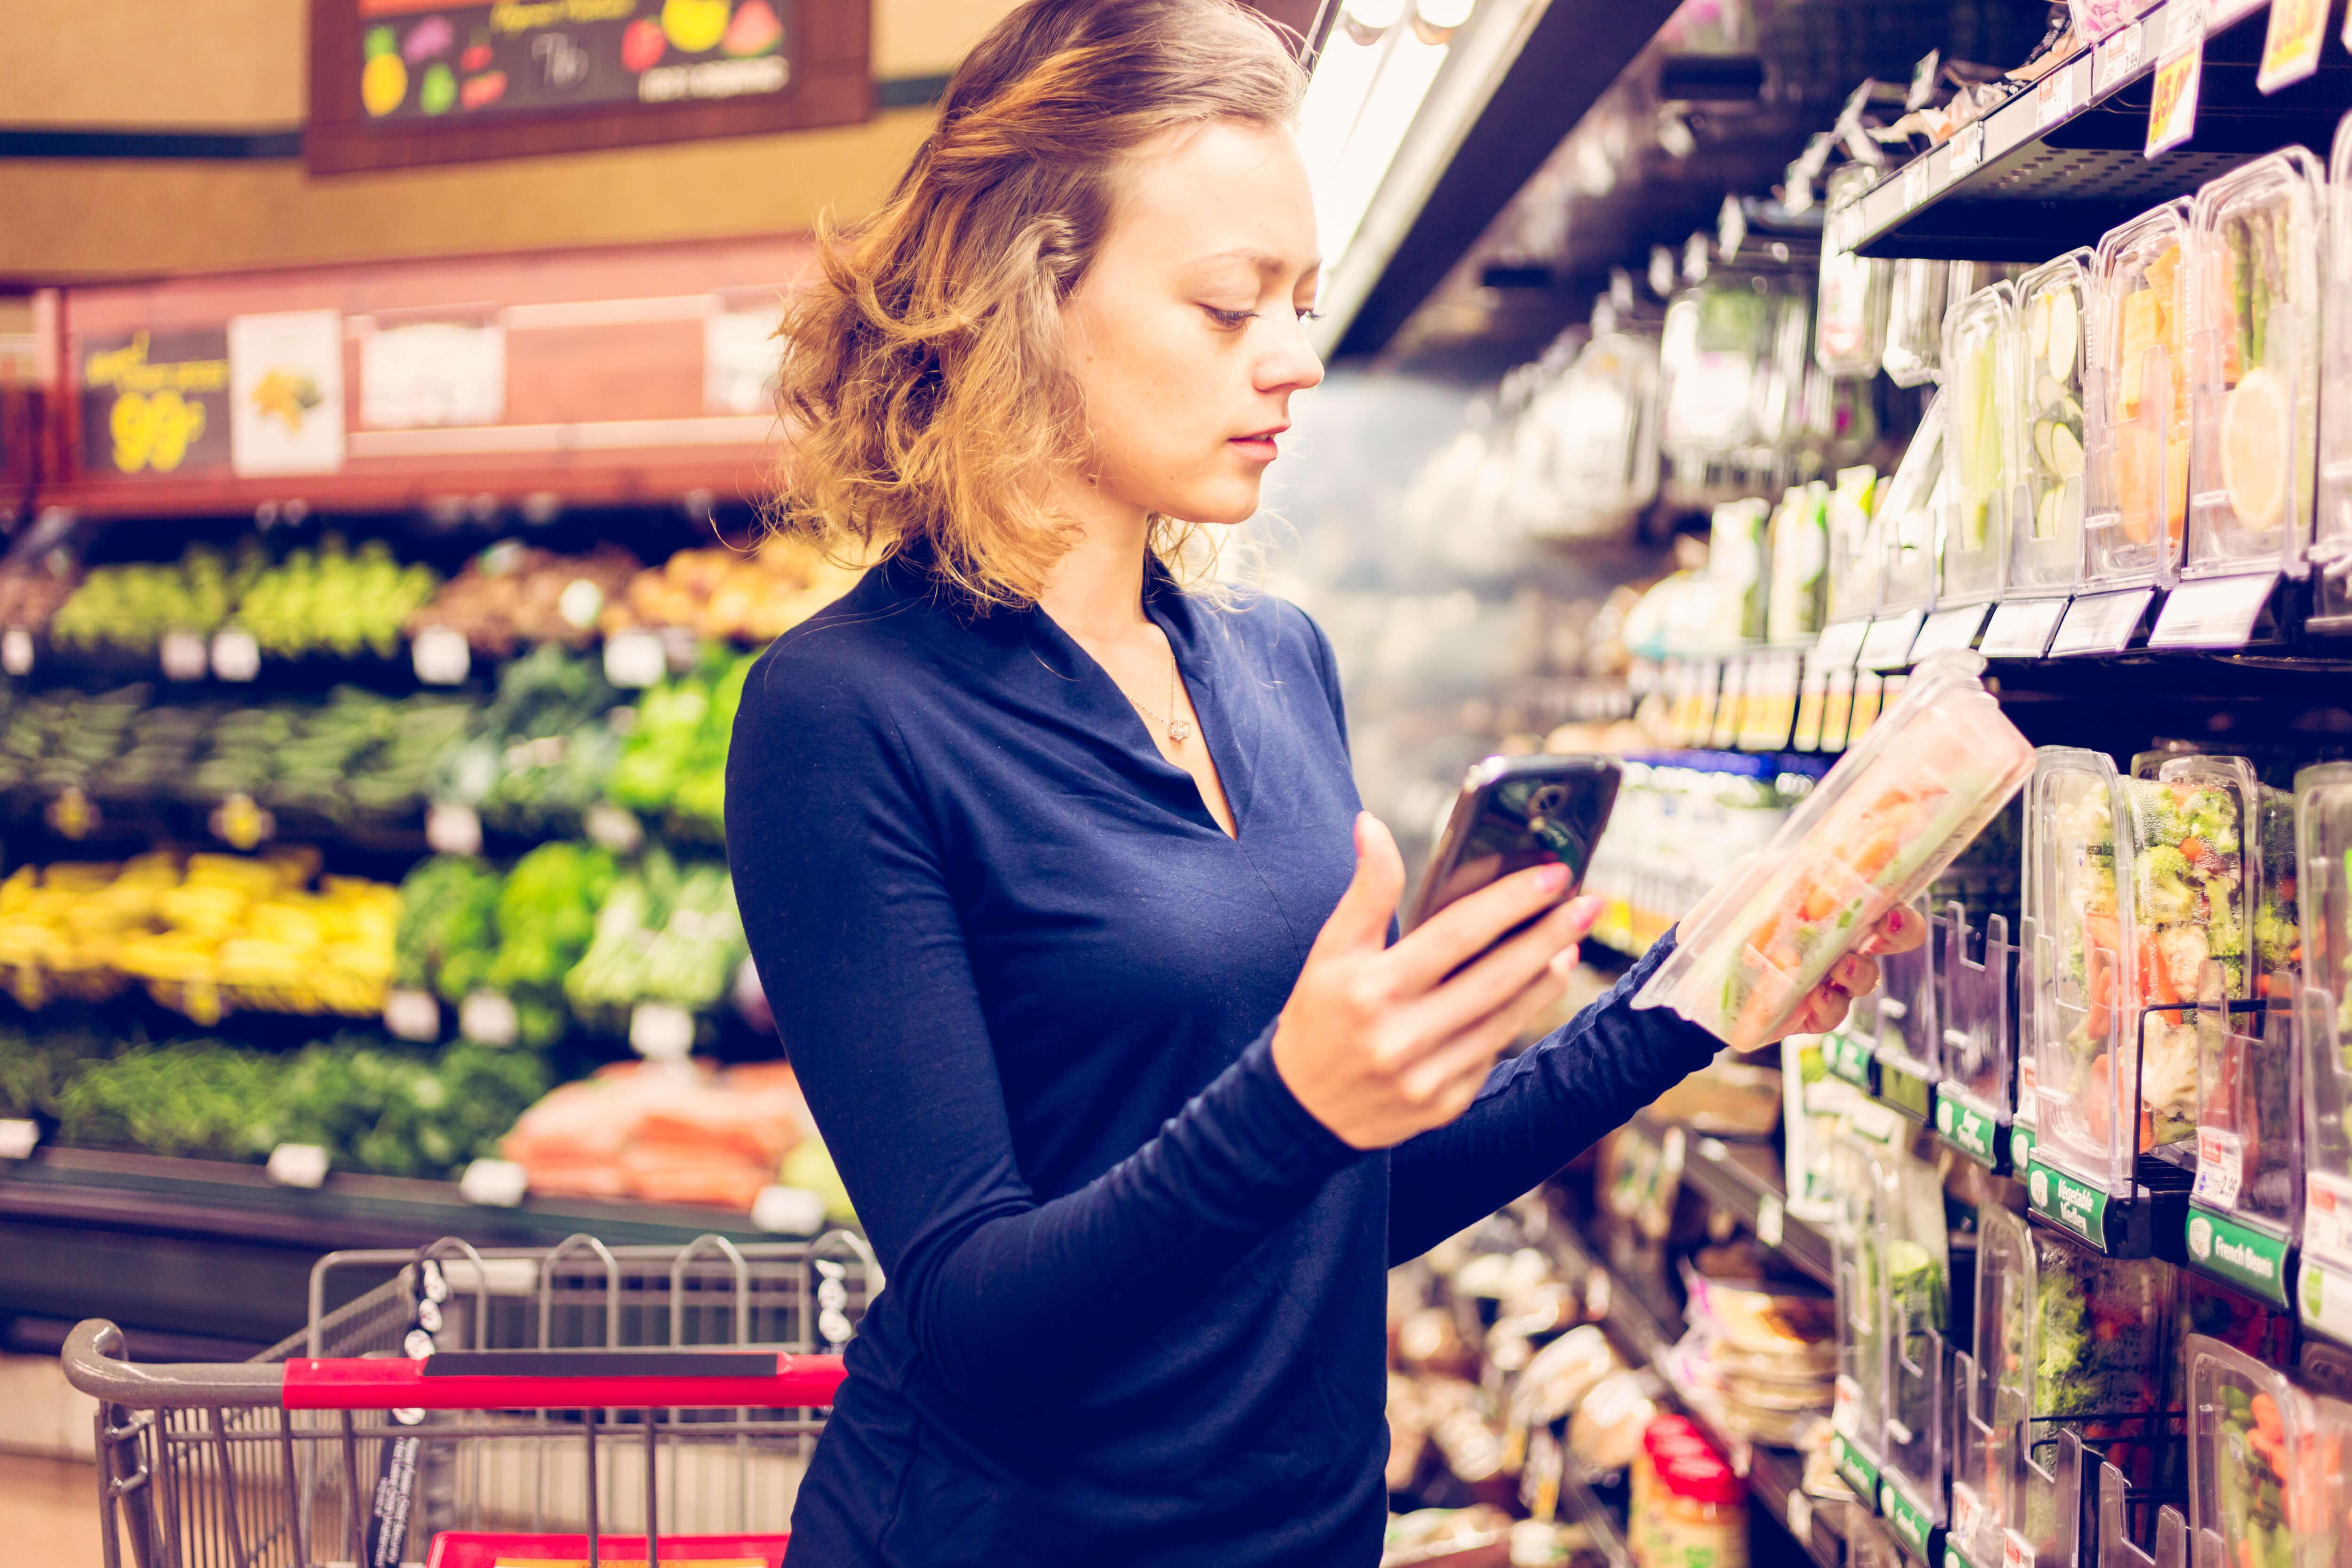 IoT technology is set to transform the retail industry and immensely benefit the sector, in various ways. Source: Shutterstock